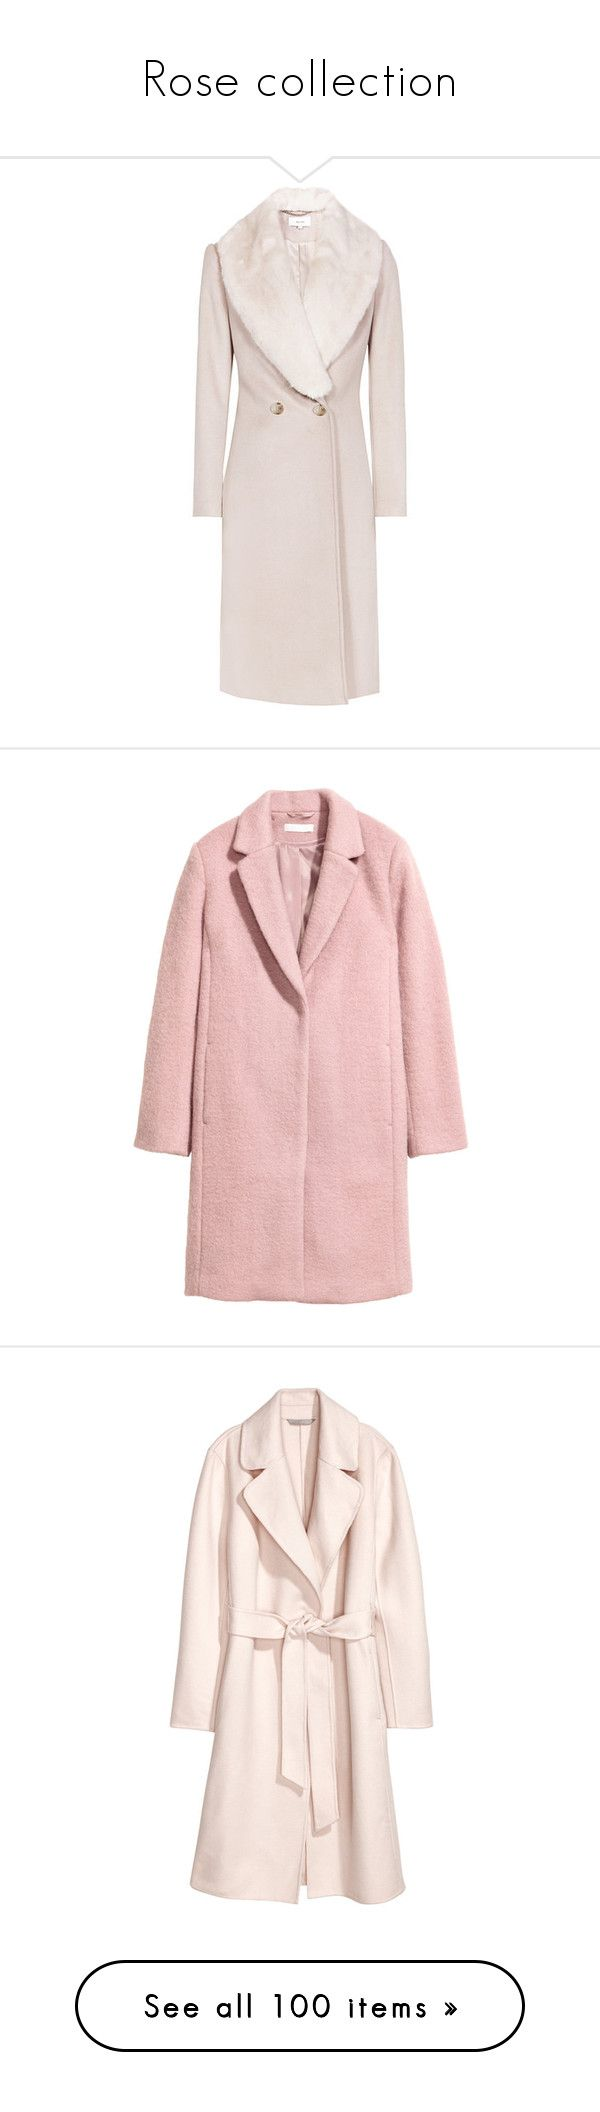 """""""Rose collection"""" by egorova-tatiana on Polyvore featuring outerwear, coats, reiss, faux fur trim coats, pink coat, rose pink coat, fur-lined coats, h&m coats, wool blend coat and home"""